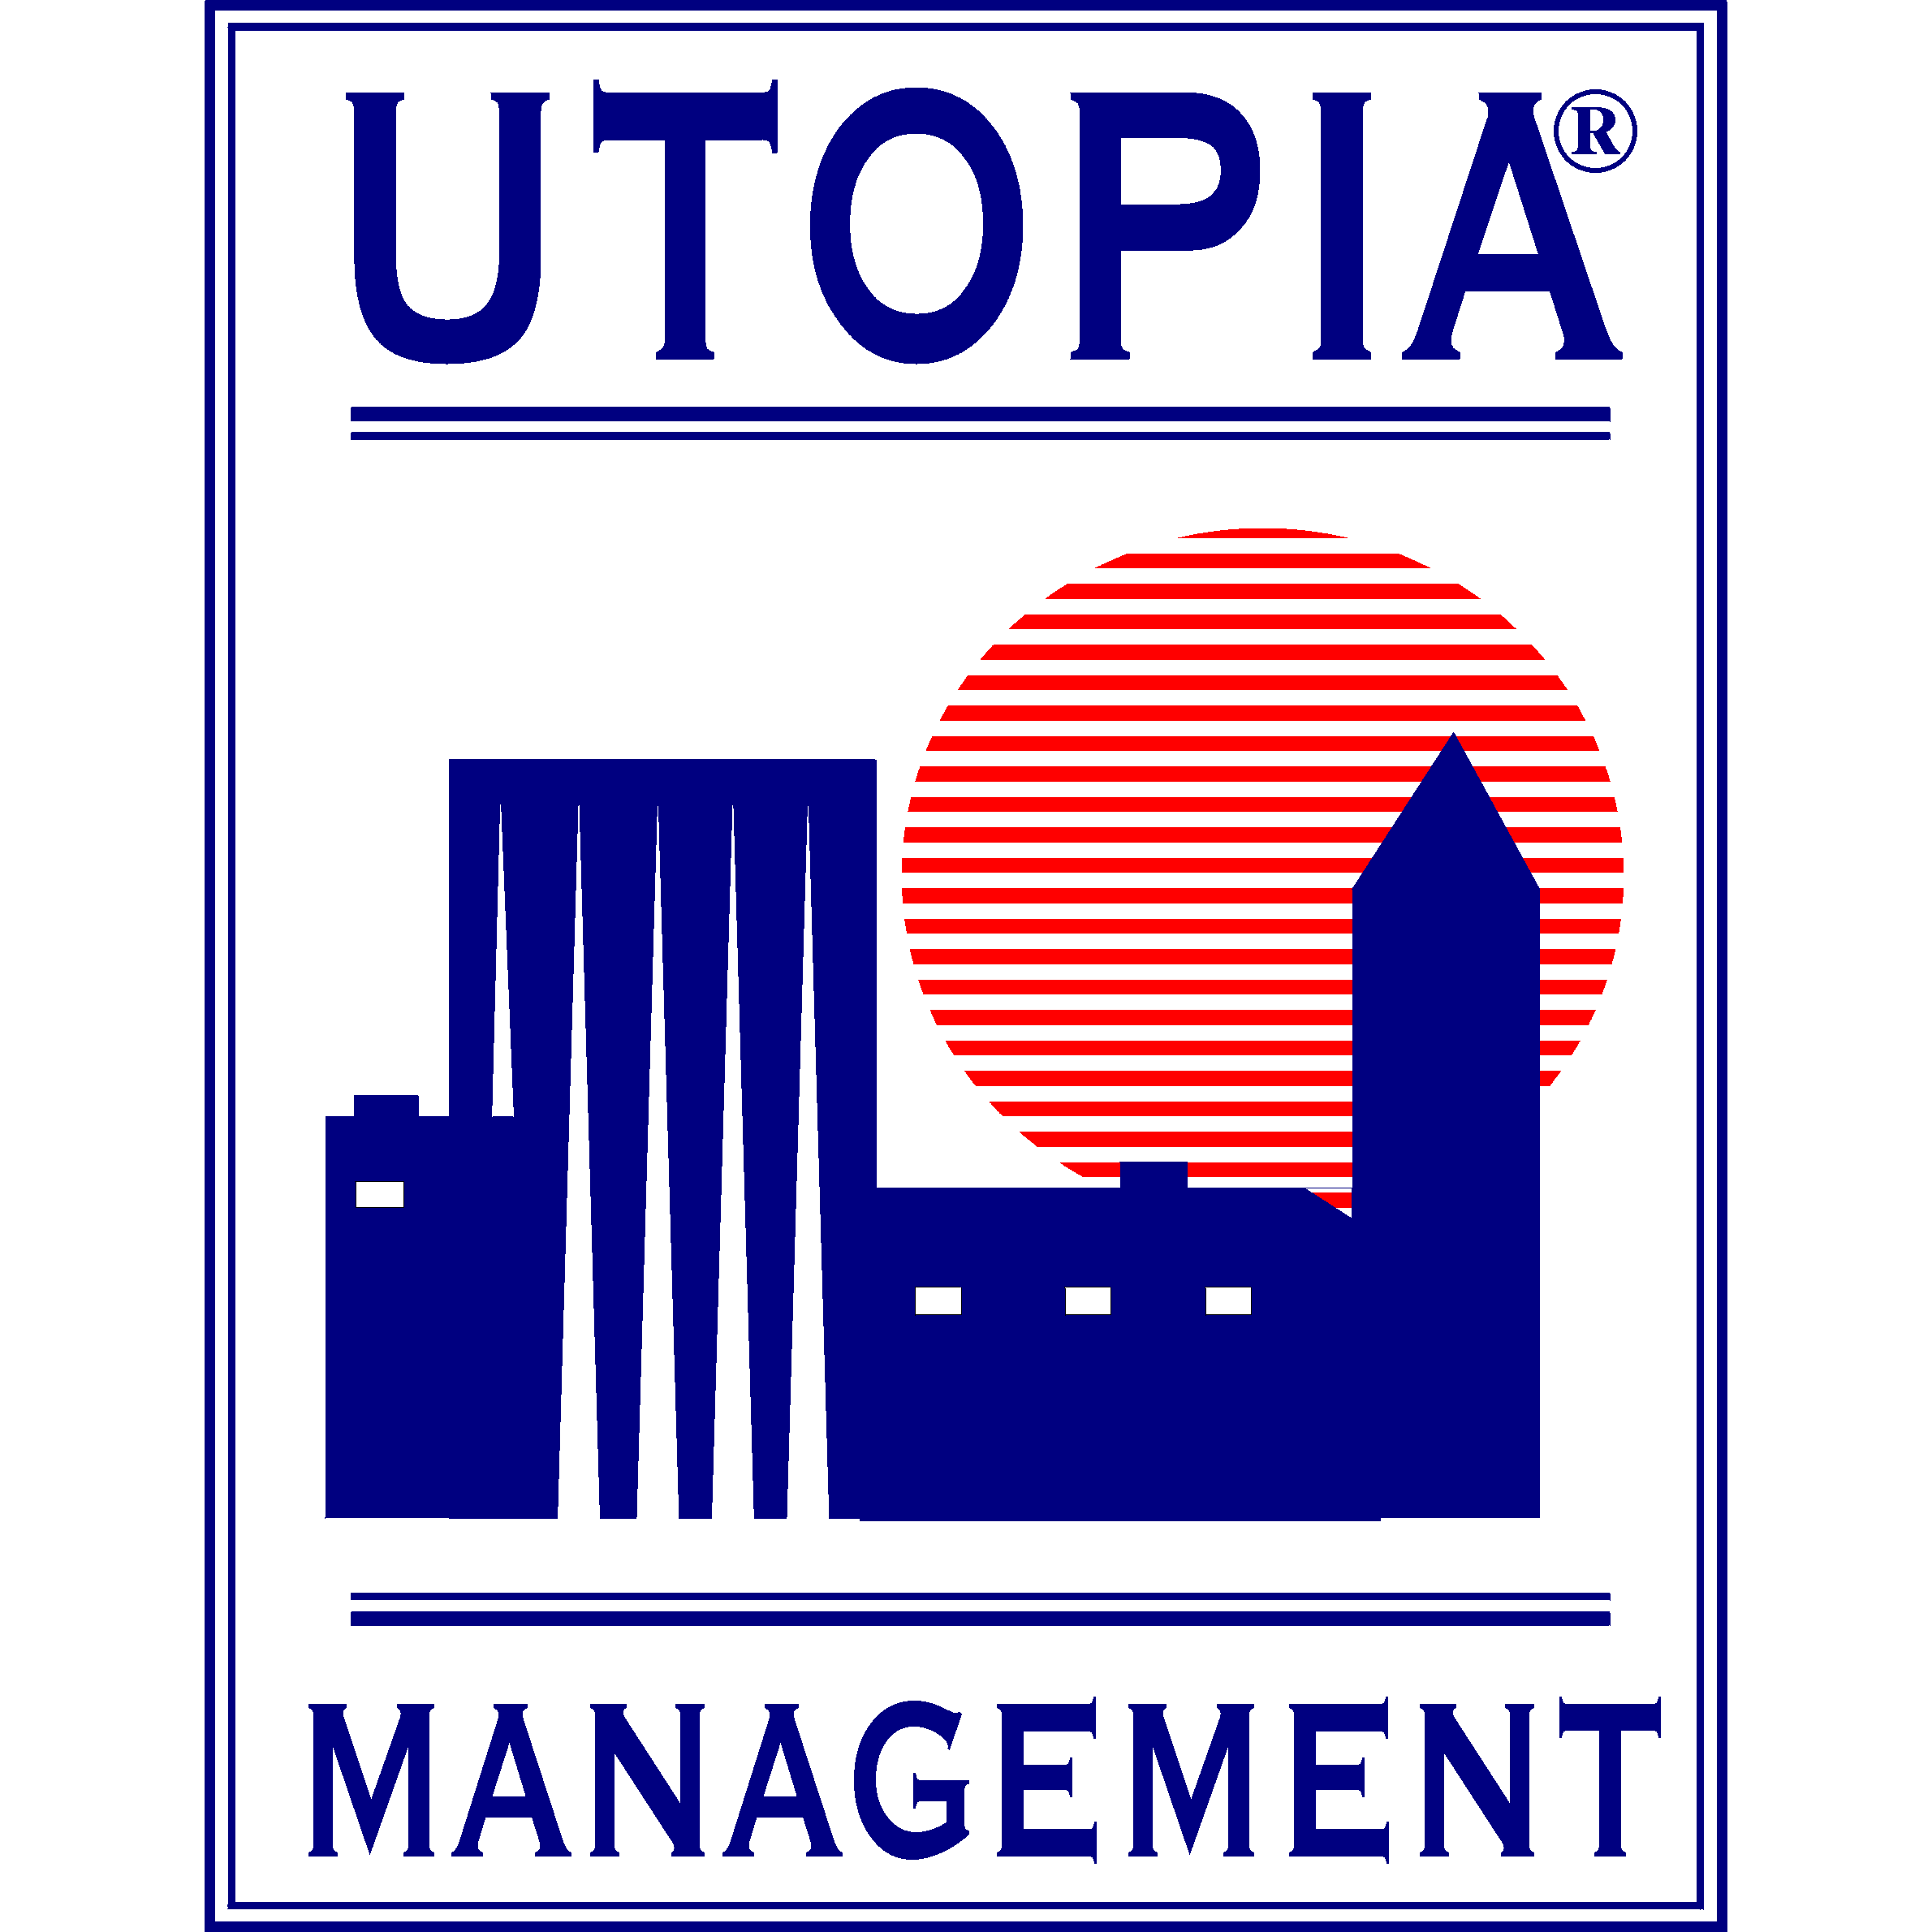 Property Management Company in CA Ontario 91761 Utopia Management 3281 E. Guasti Road 7th Floor (909)375-1111